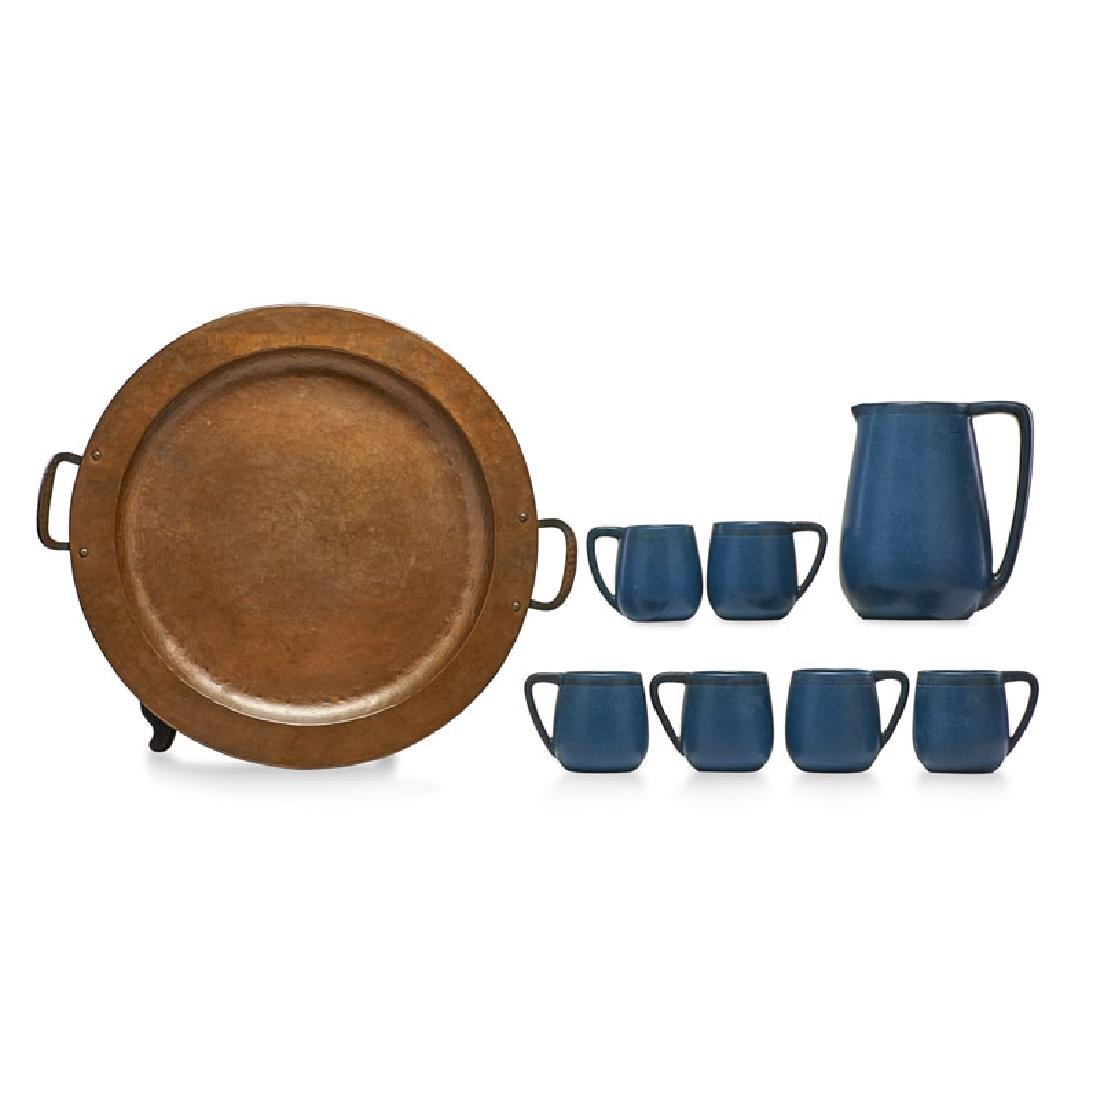 MARBLEHEAD; GUSTAV STICKLEY Pitcher and mugs, tray